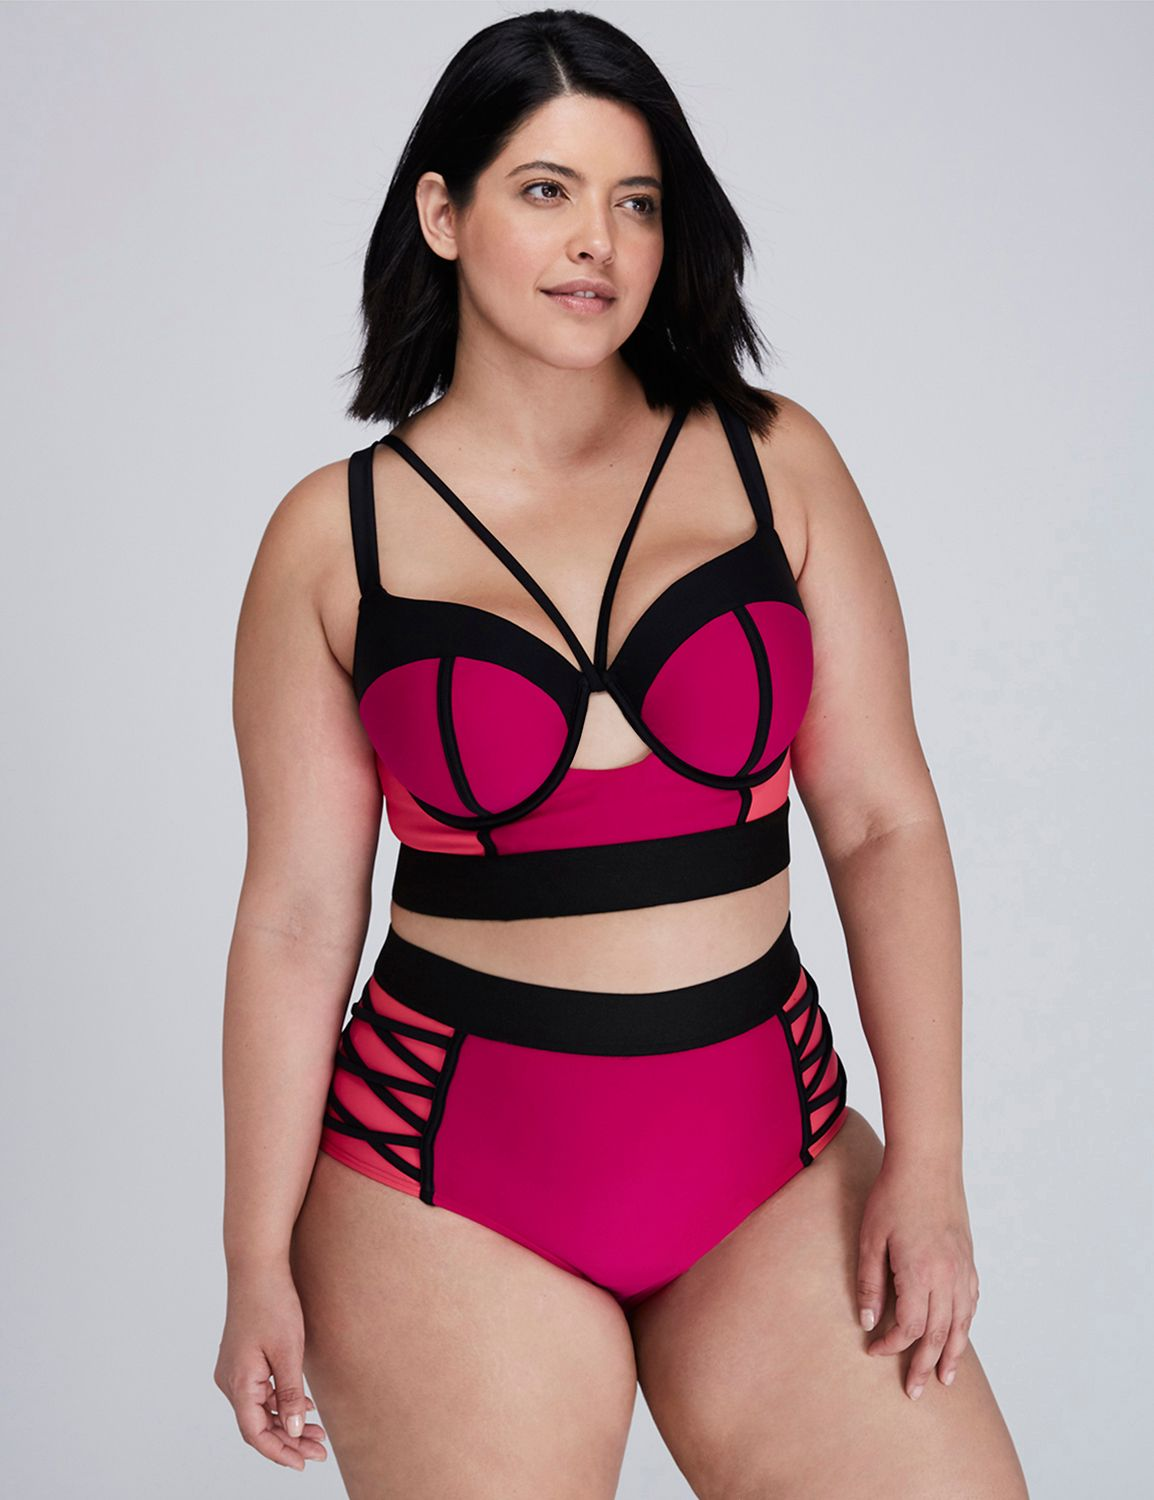 86610cc4bf8ed ... swimwear in full figure sizes. Colorblock Longline Bikini Top with  Built-In Balconette Bra